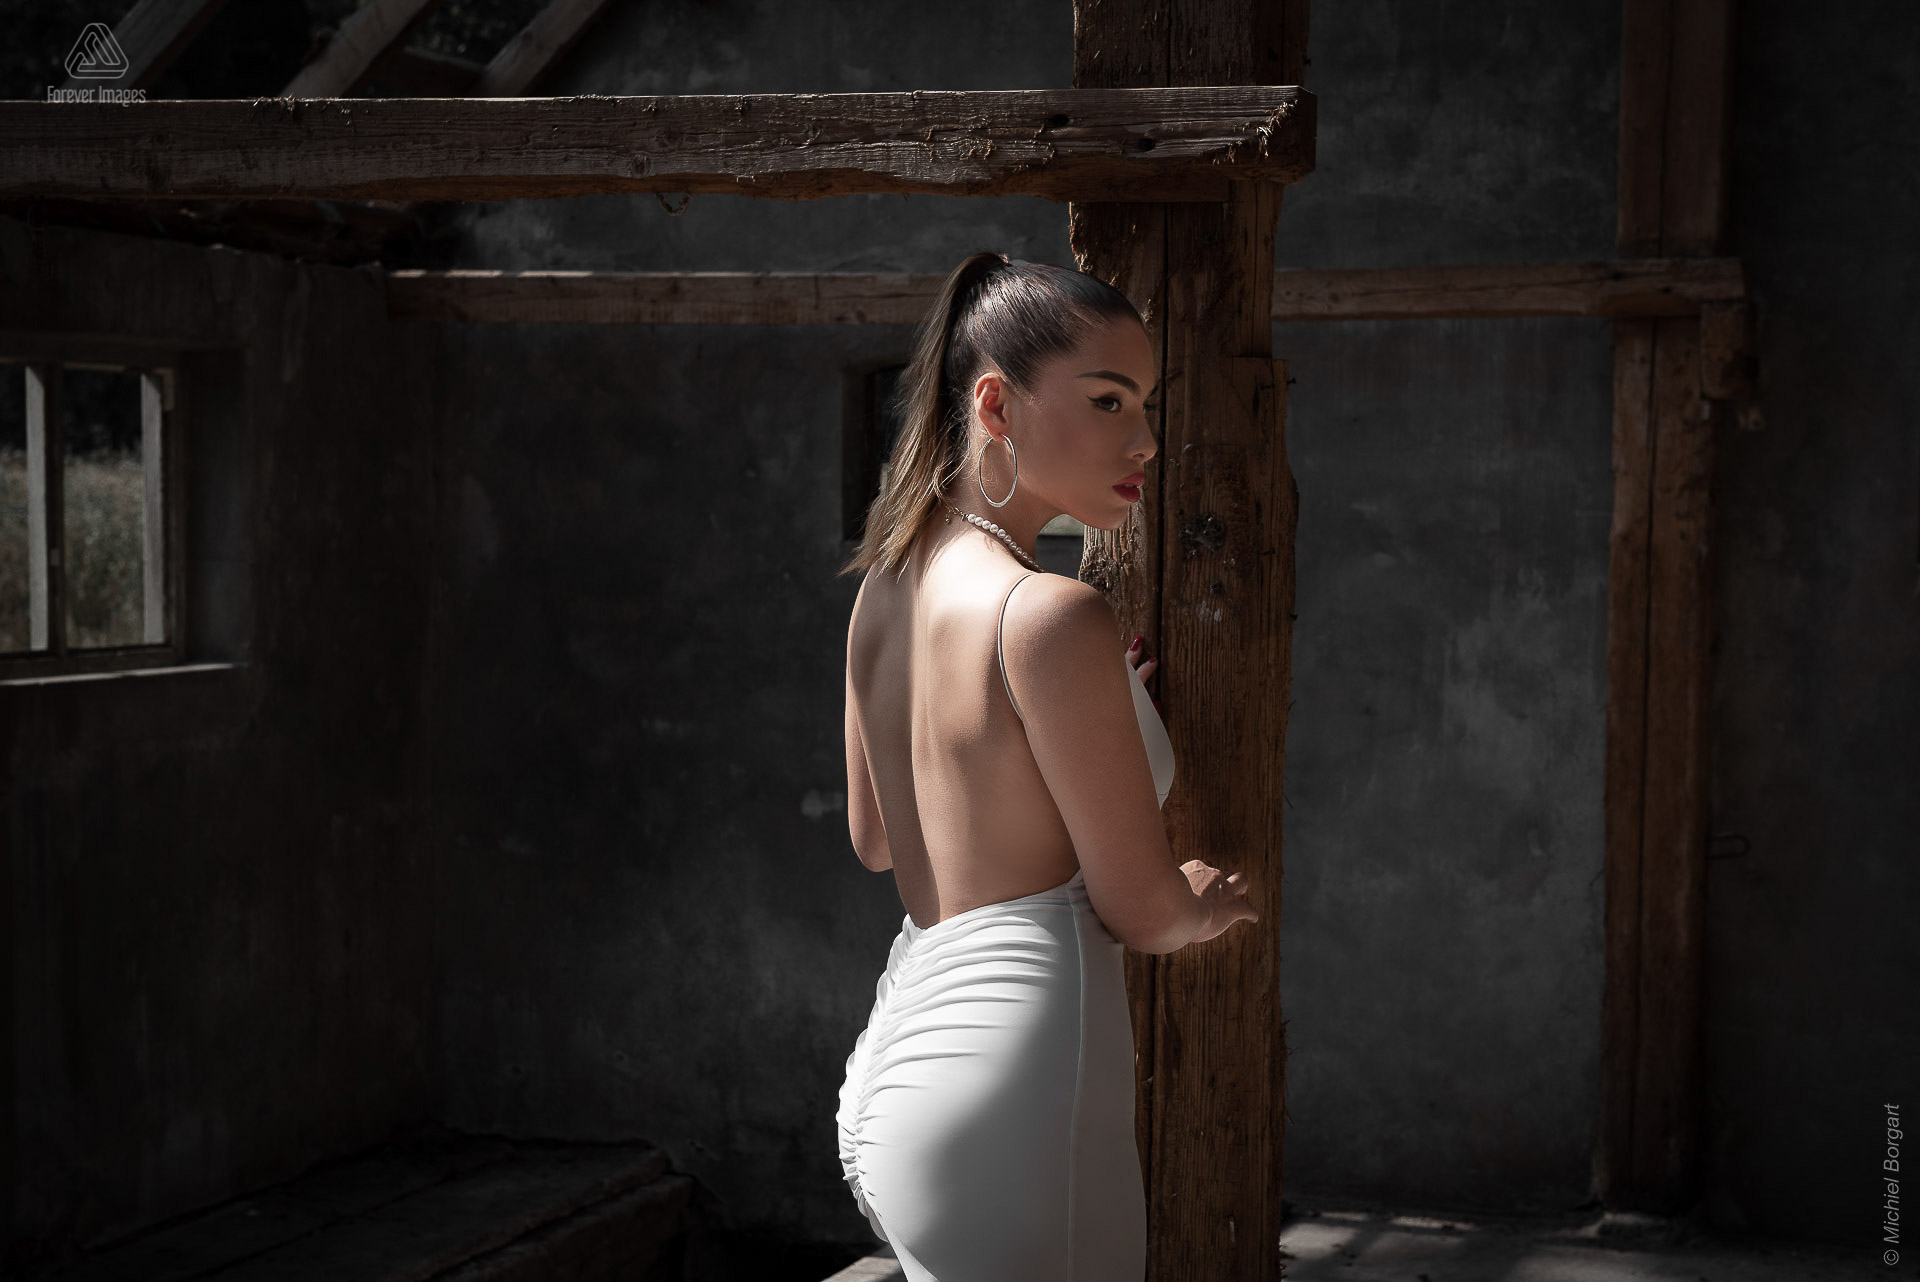 Portrait photo urbex white dress beautiful lady in old barn near wooden pillar | Floriana Horta | Portrait Photographer Michiel Borgart - Forever Images.